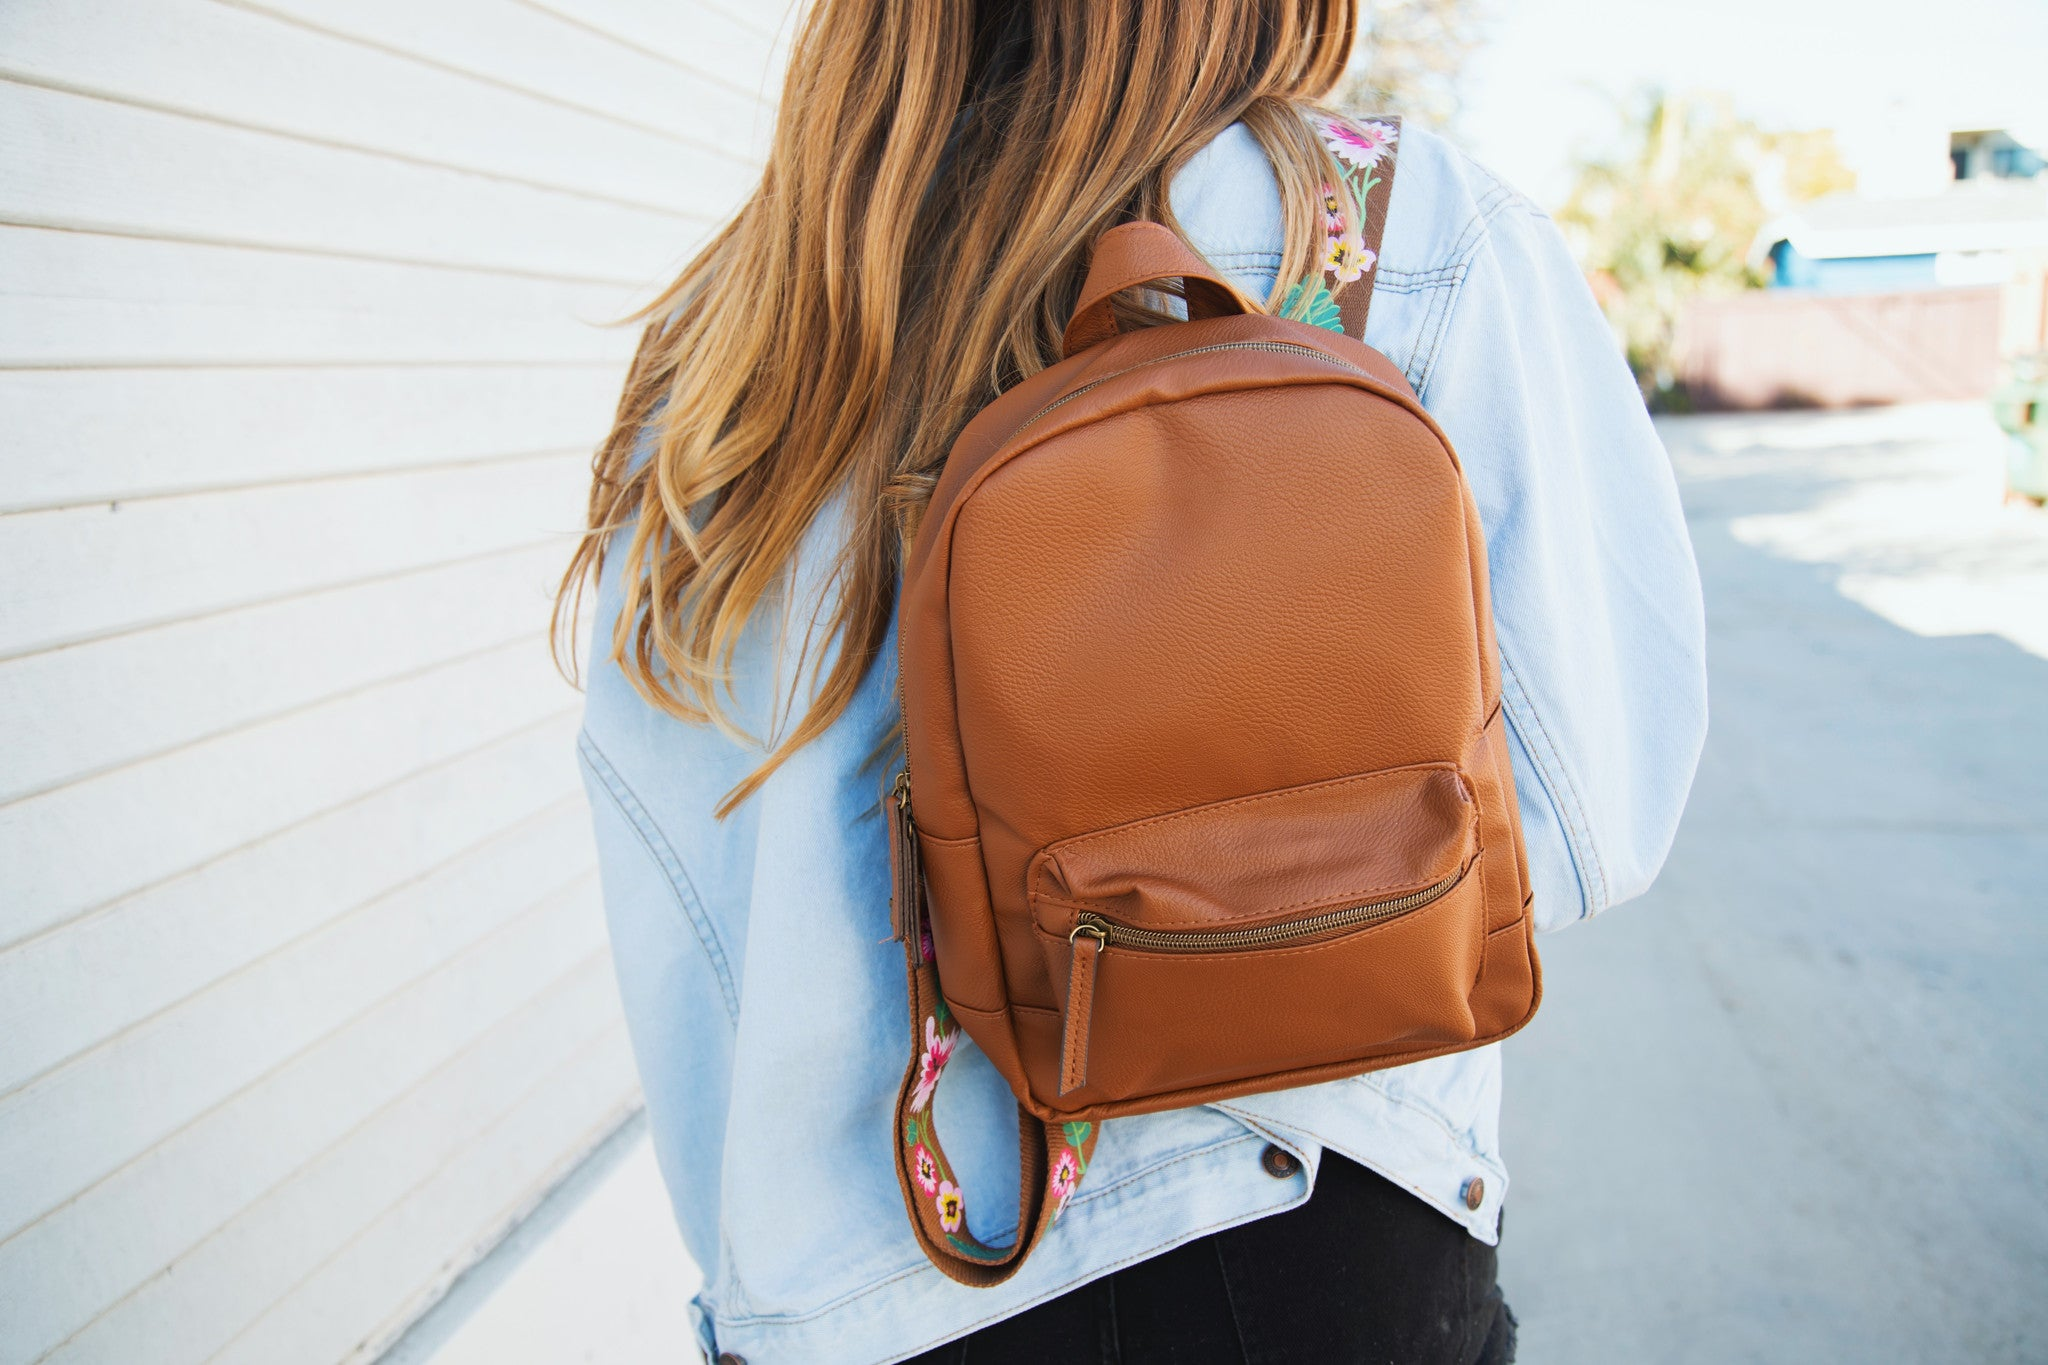 Dome Backpack With Printed Floral Straps